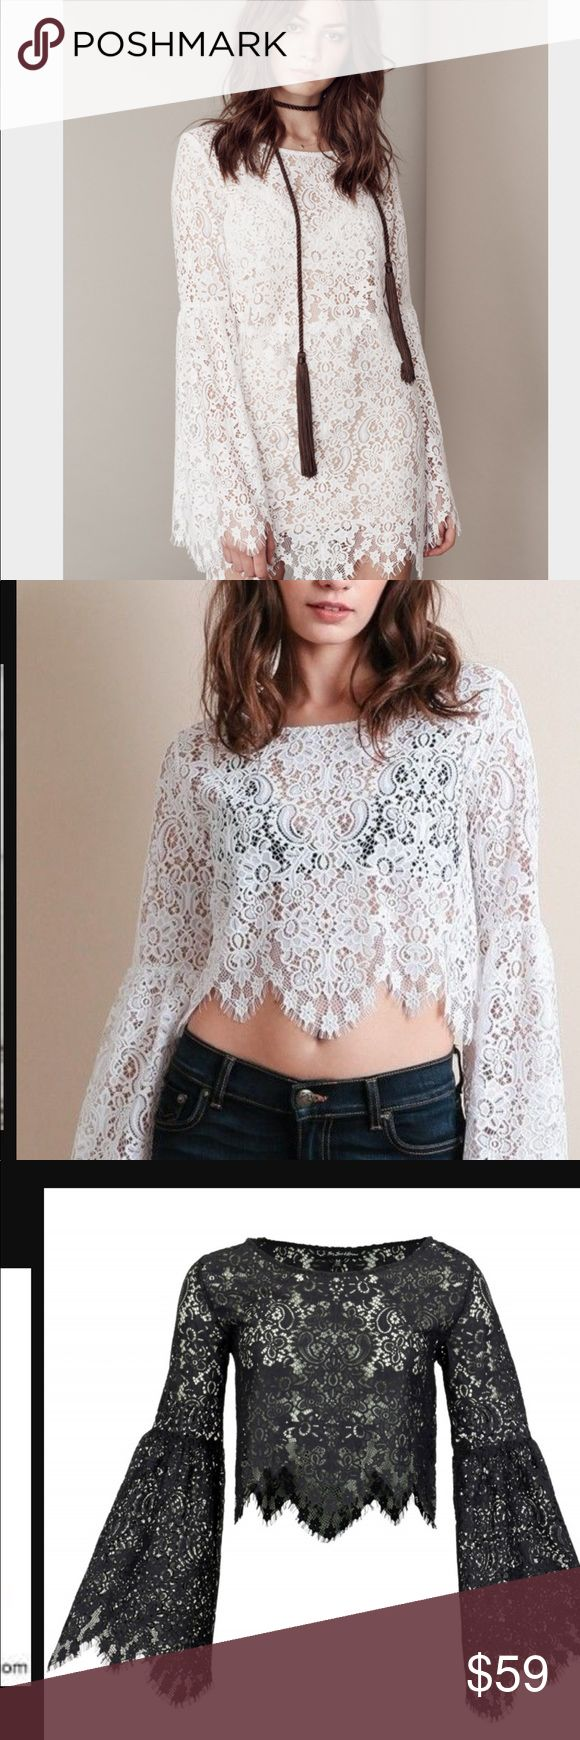 For love & lemons By design, the crop top Vika of For Love Lemons . The stunning paisley floral lace and the flared trumpet sleeves make the blouse something special. Although she is unlined, you can show off your SKIVVIES underneath for a little sex appeal. with a pair of high waisted jeans. For Love&Lemons crop top Vika  Round neckline Long trumpet-shaped flared sleeves Scalloped edge hemlines Unlined Paisley floral lace Color: Black For Love And Lemons Tops Tees - Long Sleeve